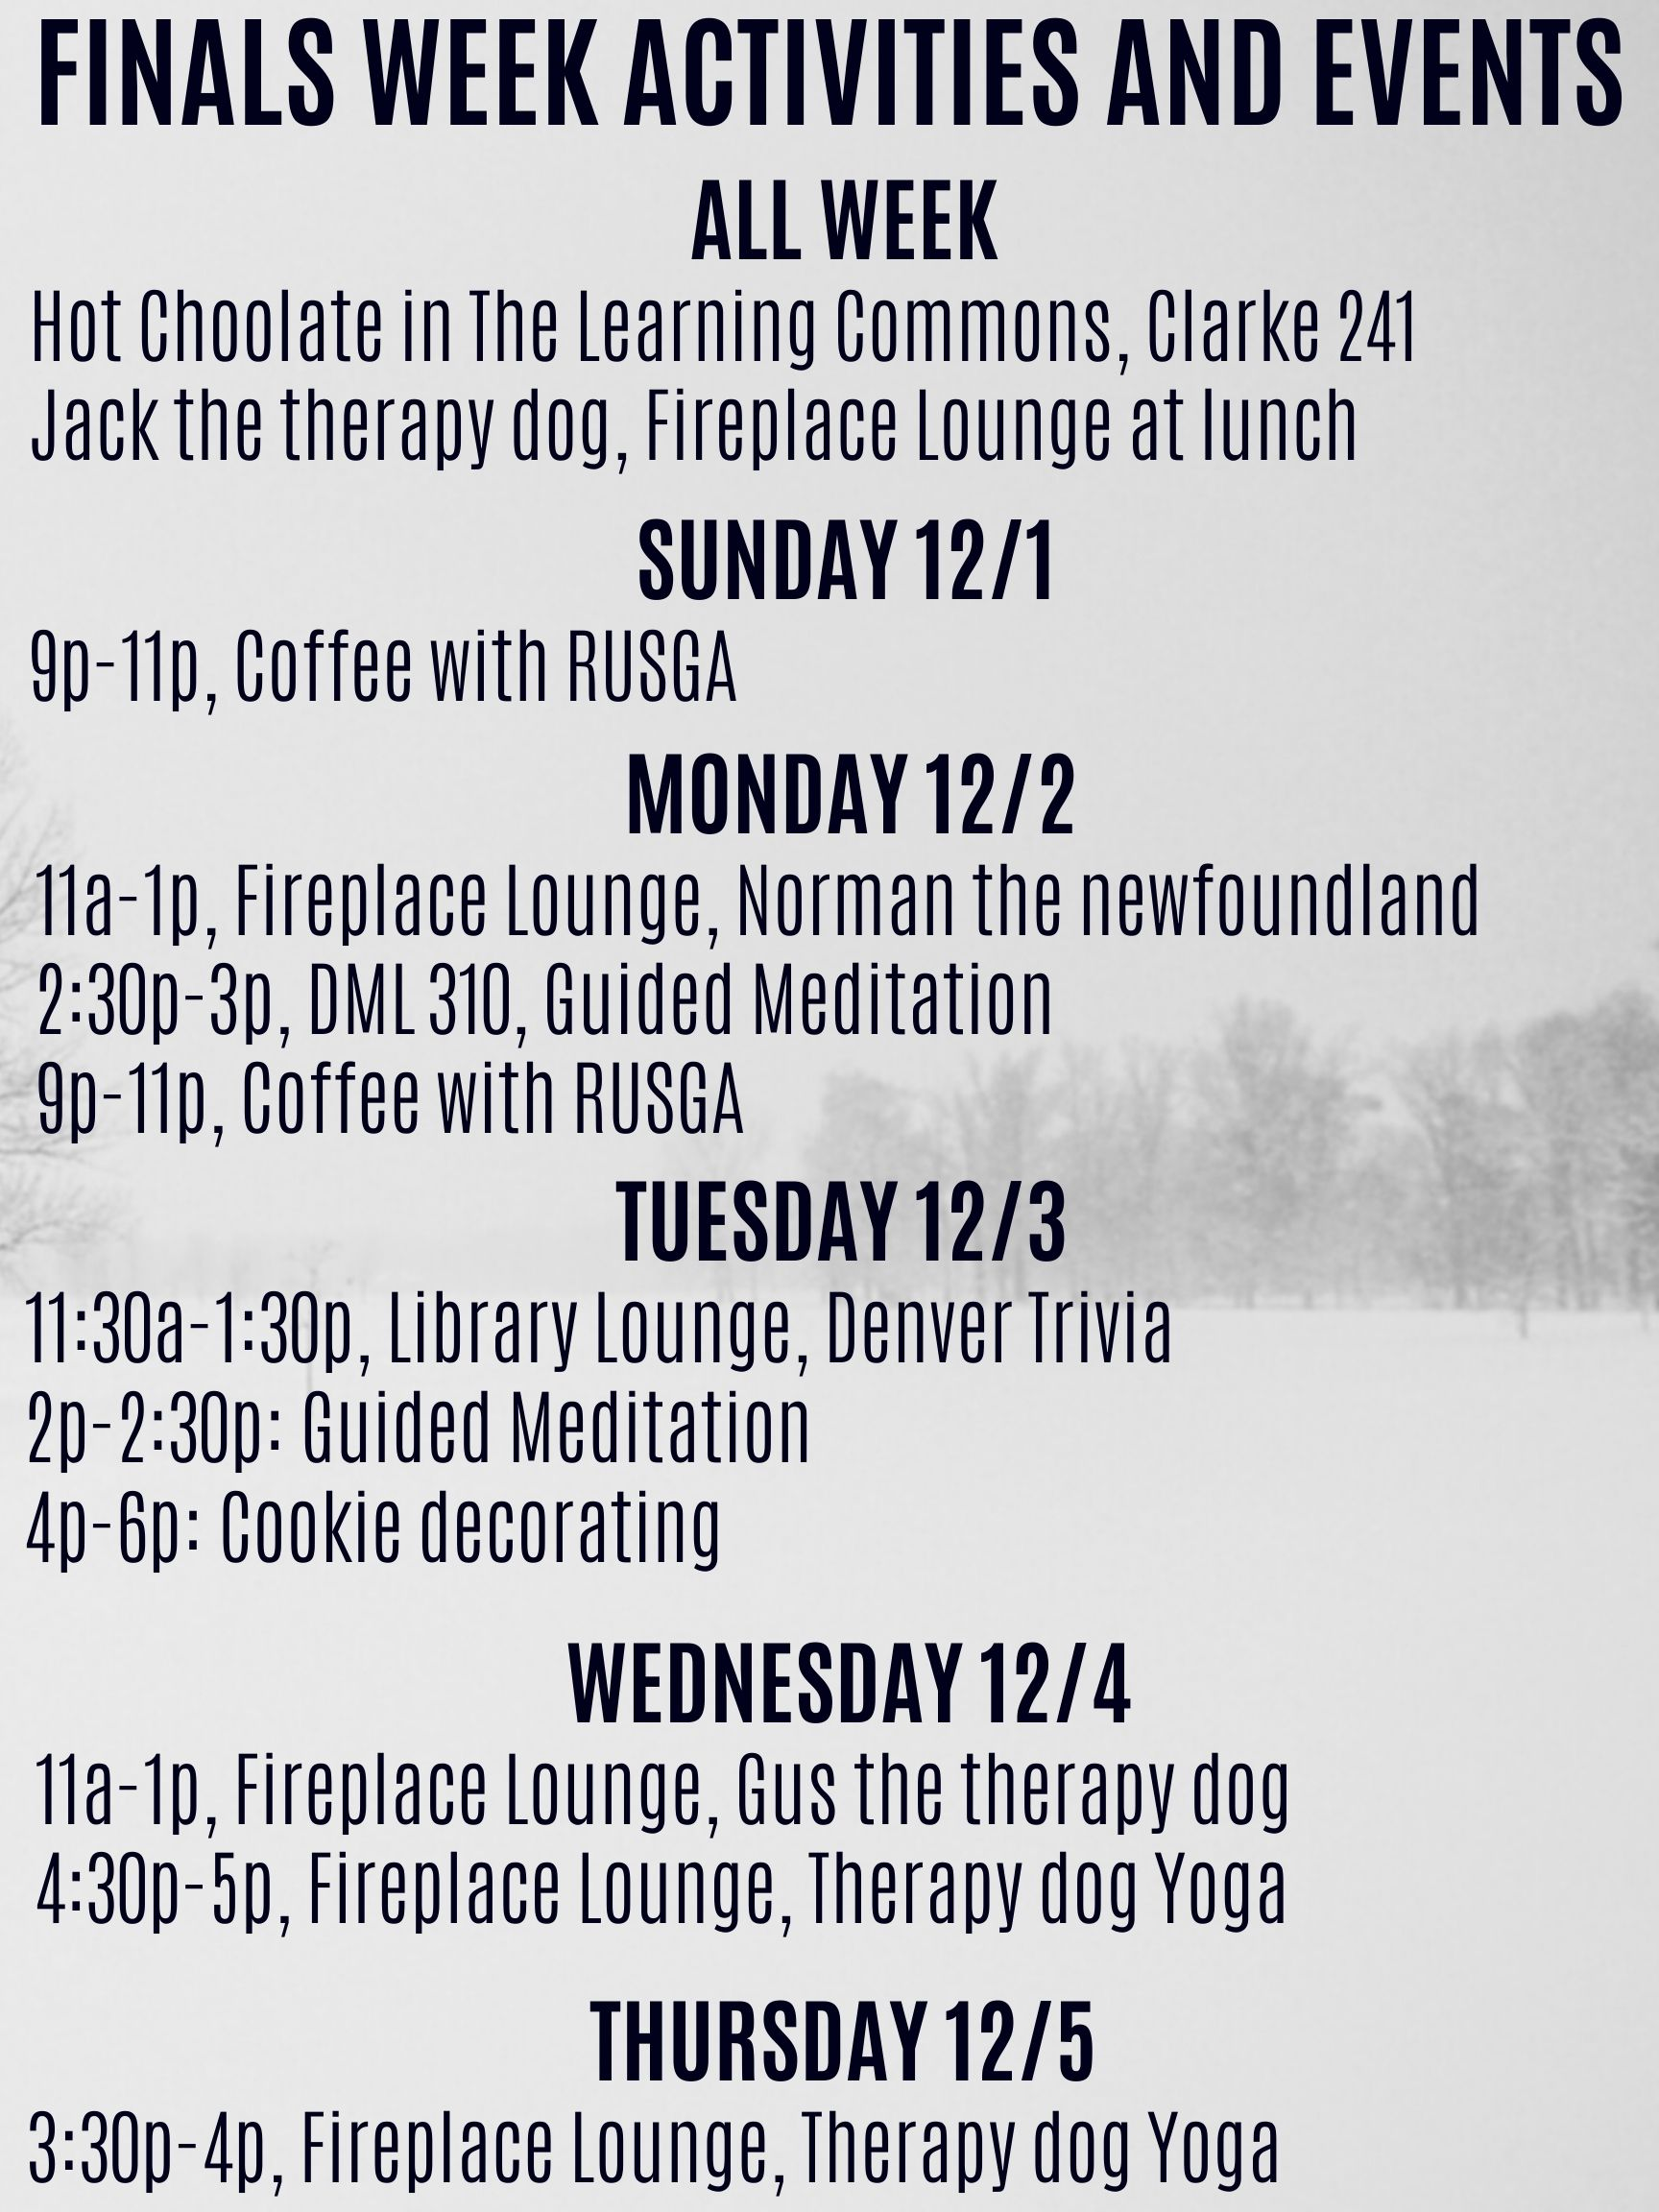 stress less activities December 1 - 6, 2019 include therapy dogs, meditation, yoga, cookie decorating